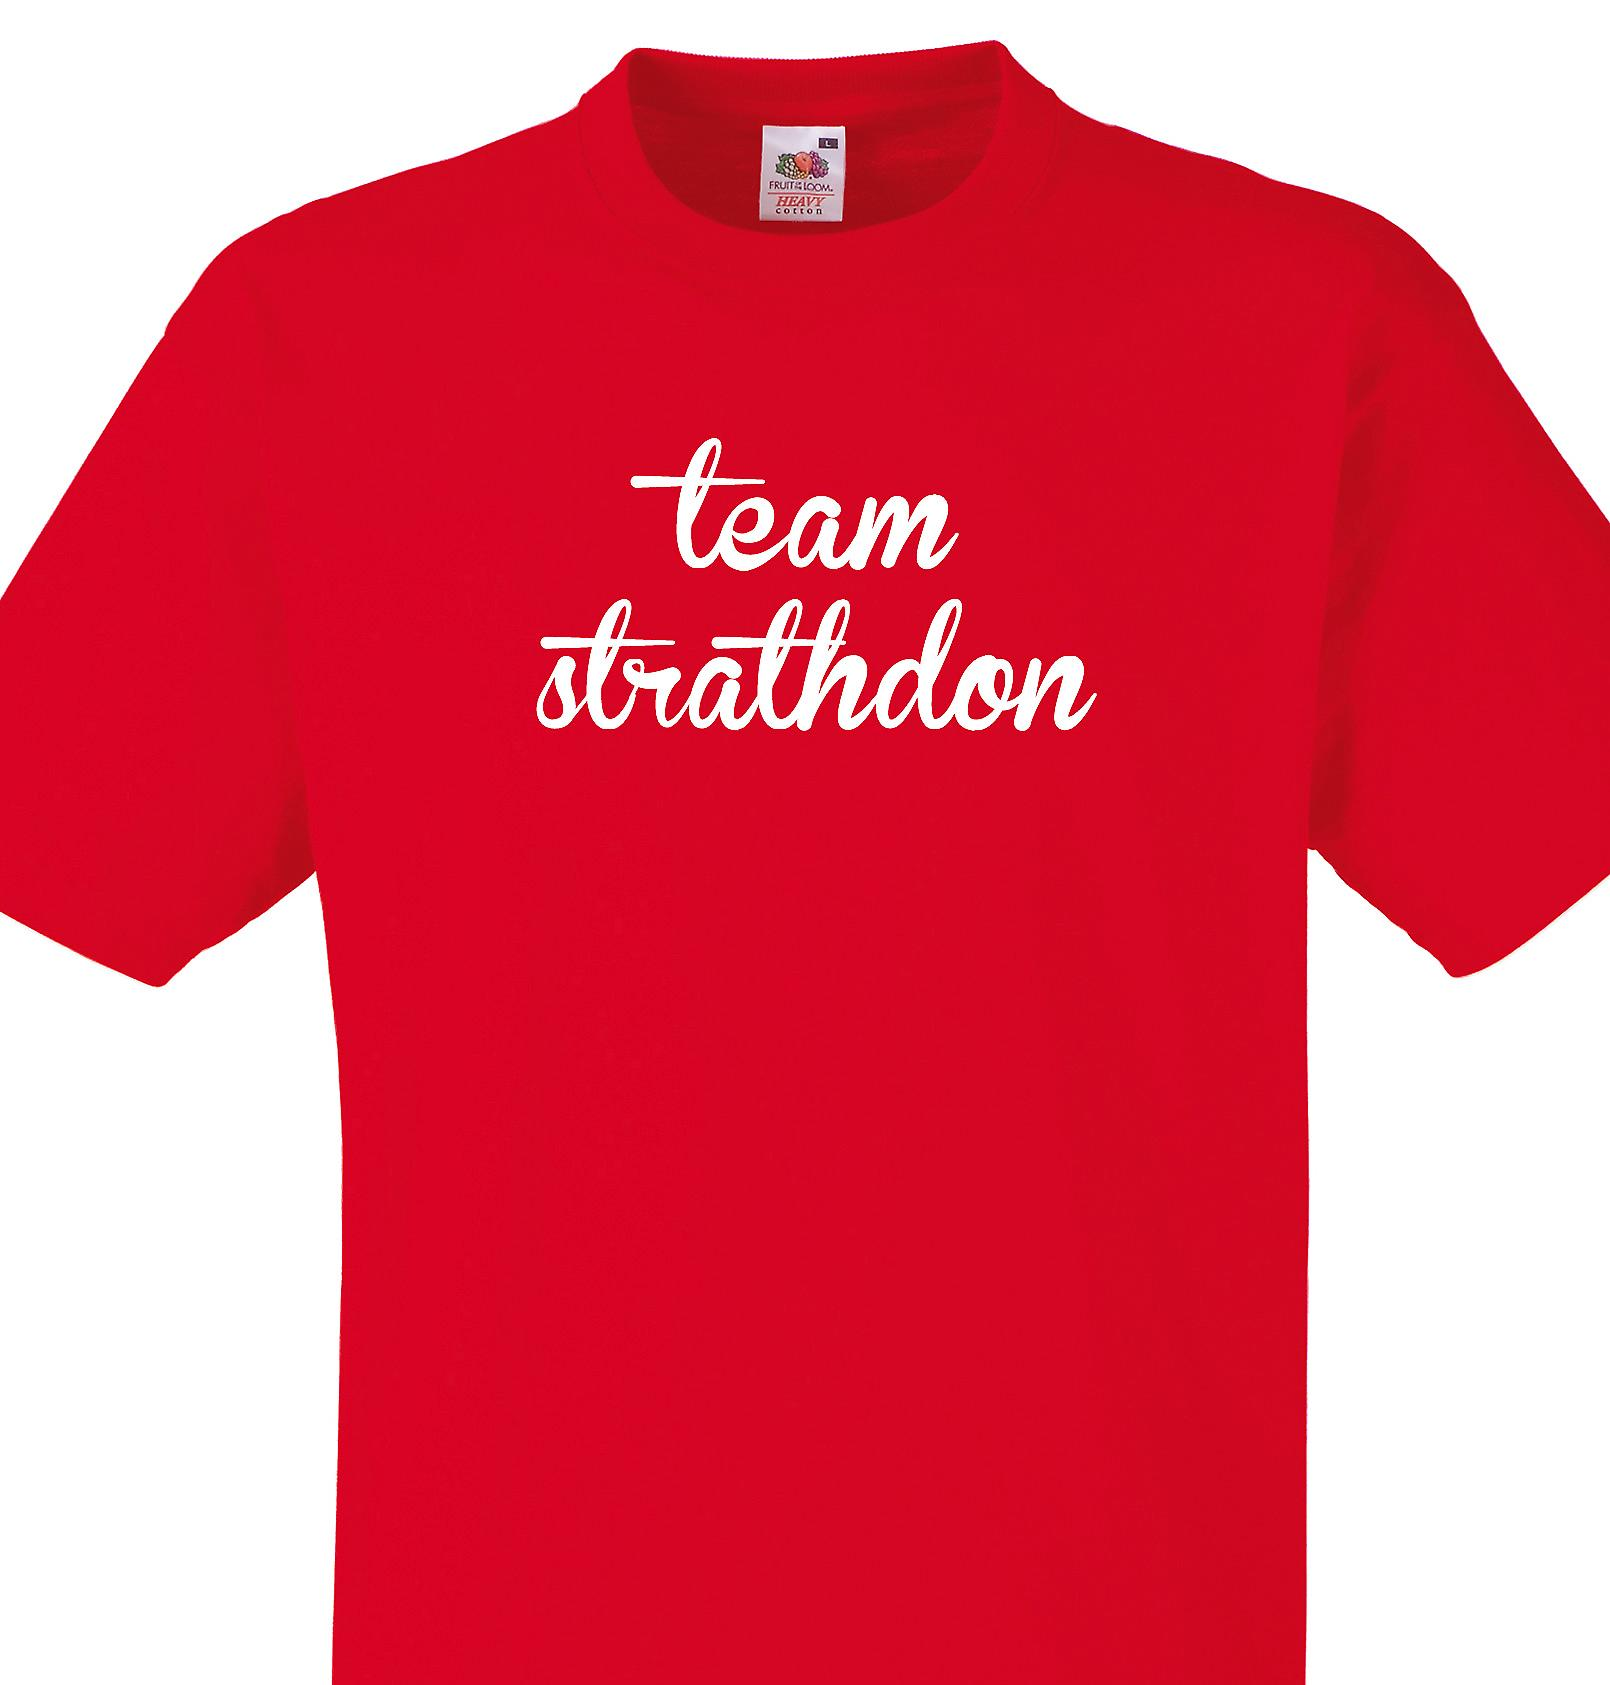 Team Strathdon Red T shirt